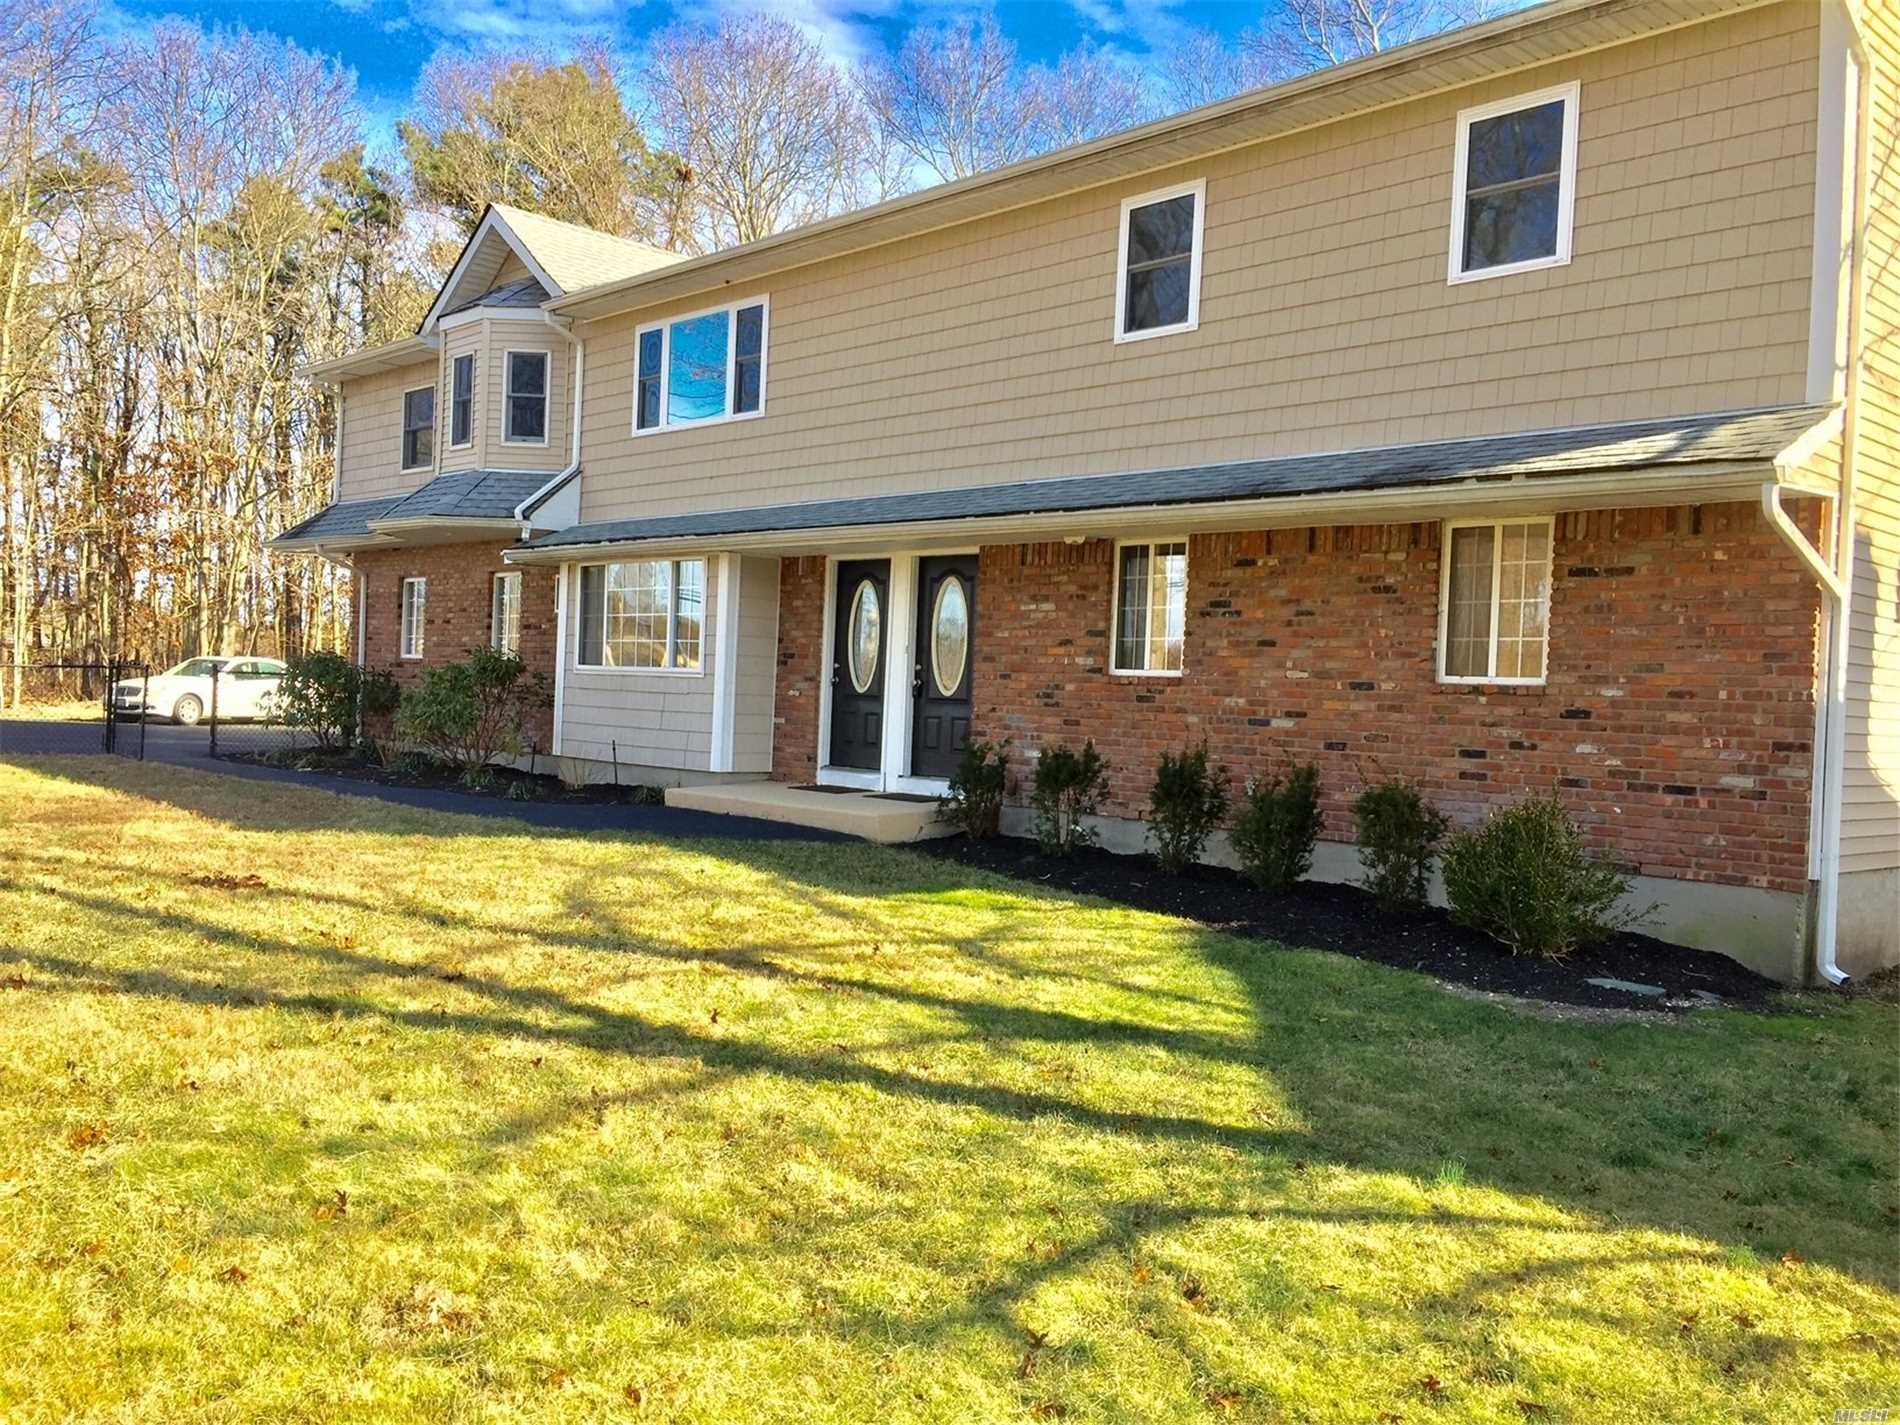 5 Bedroom 2 Bath Beautifully Renovated New Kitchen And Baths. Washer/Dryer,  Gleaming Hardwood Floors . 1 Bay Of The Garage,  Asphalt Driveway Parking. Private Yard And Deck ! This Spacious Top Floor Of A Duplex Is A Must See.